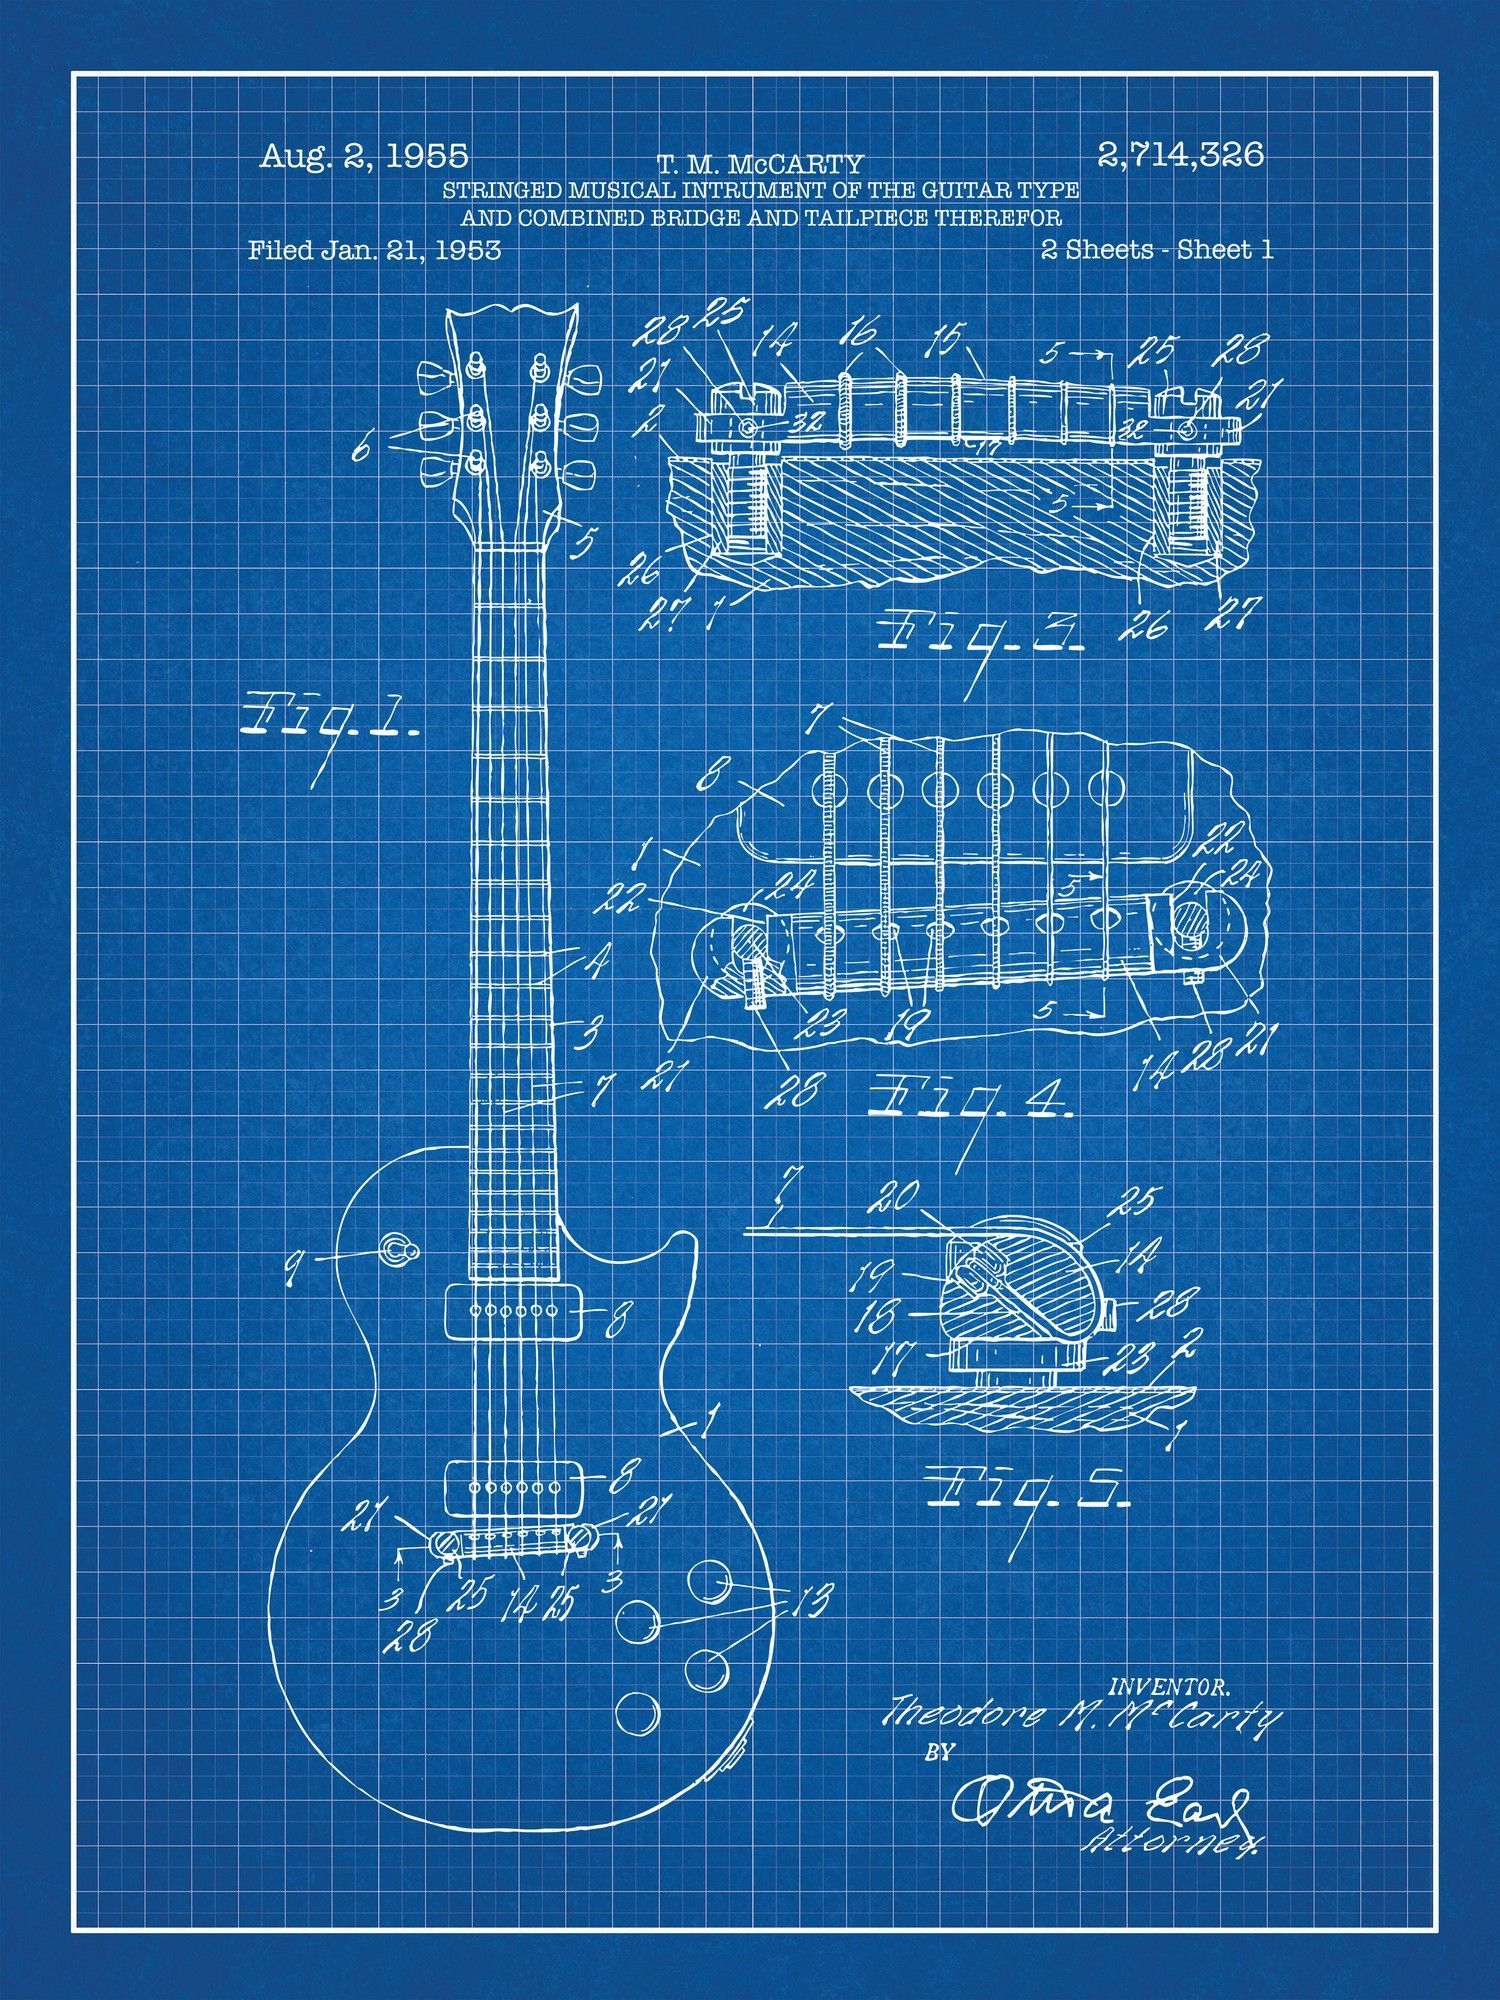 fender stratocaster guitar patent 18x24 screen print decoration